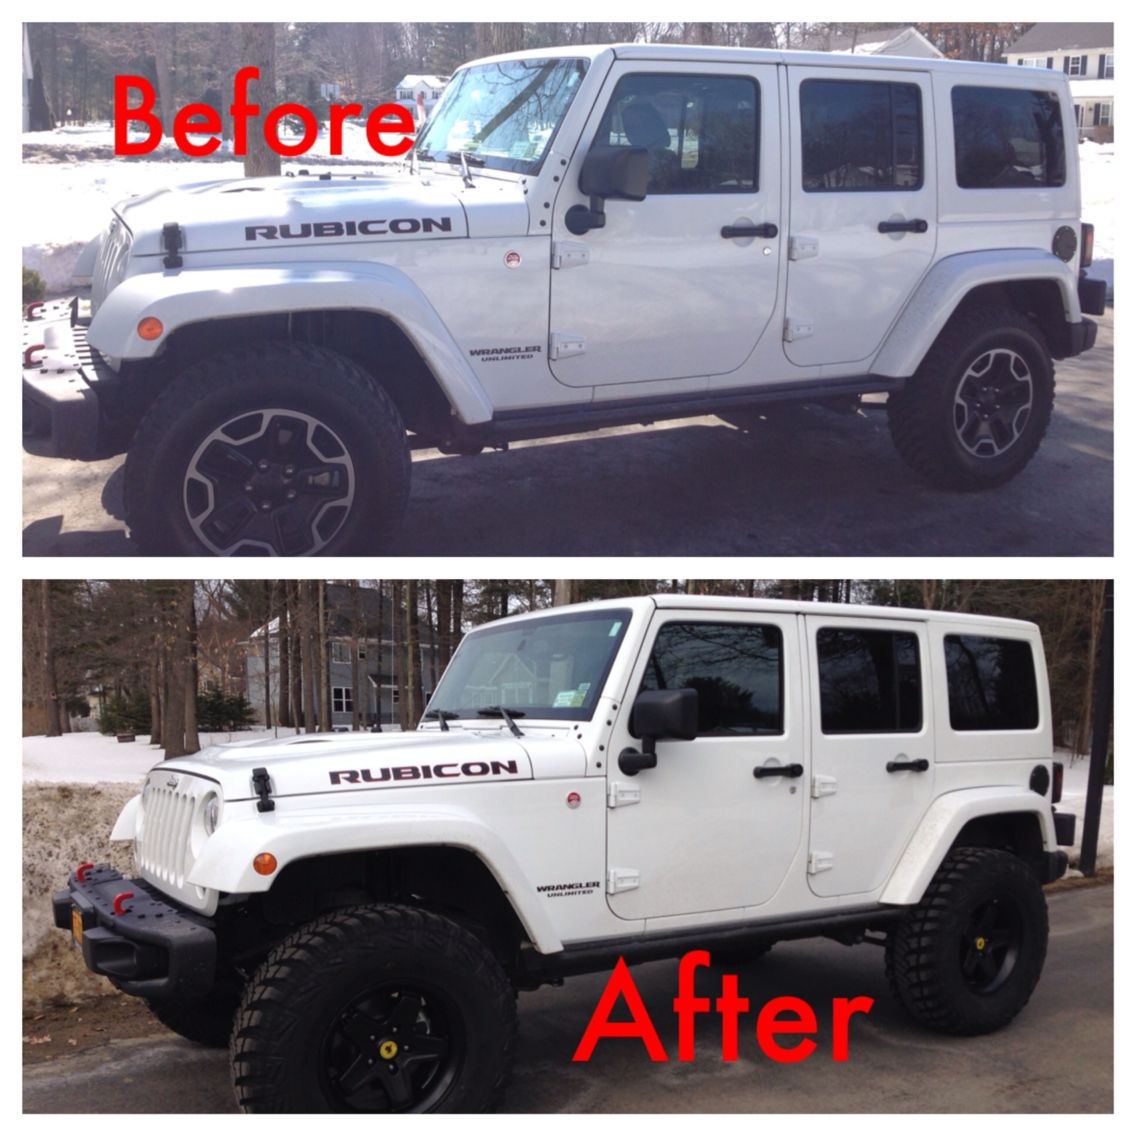 New 3.5 Inch Lift And Wheels/tires Installed On Our 2015